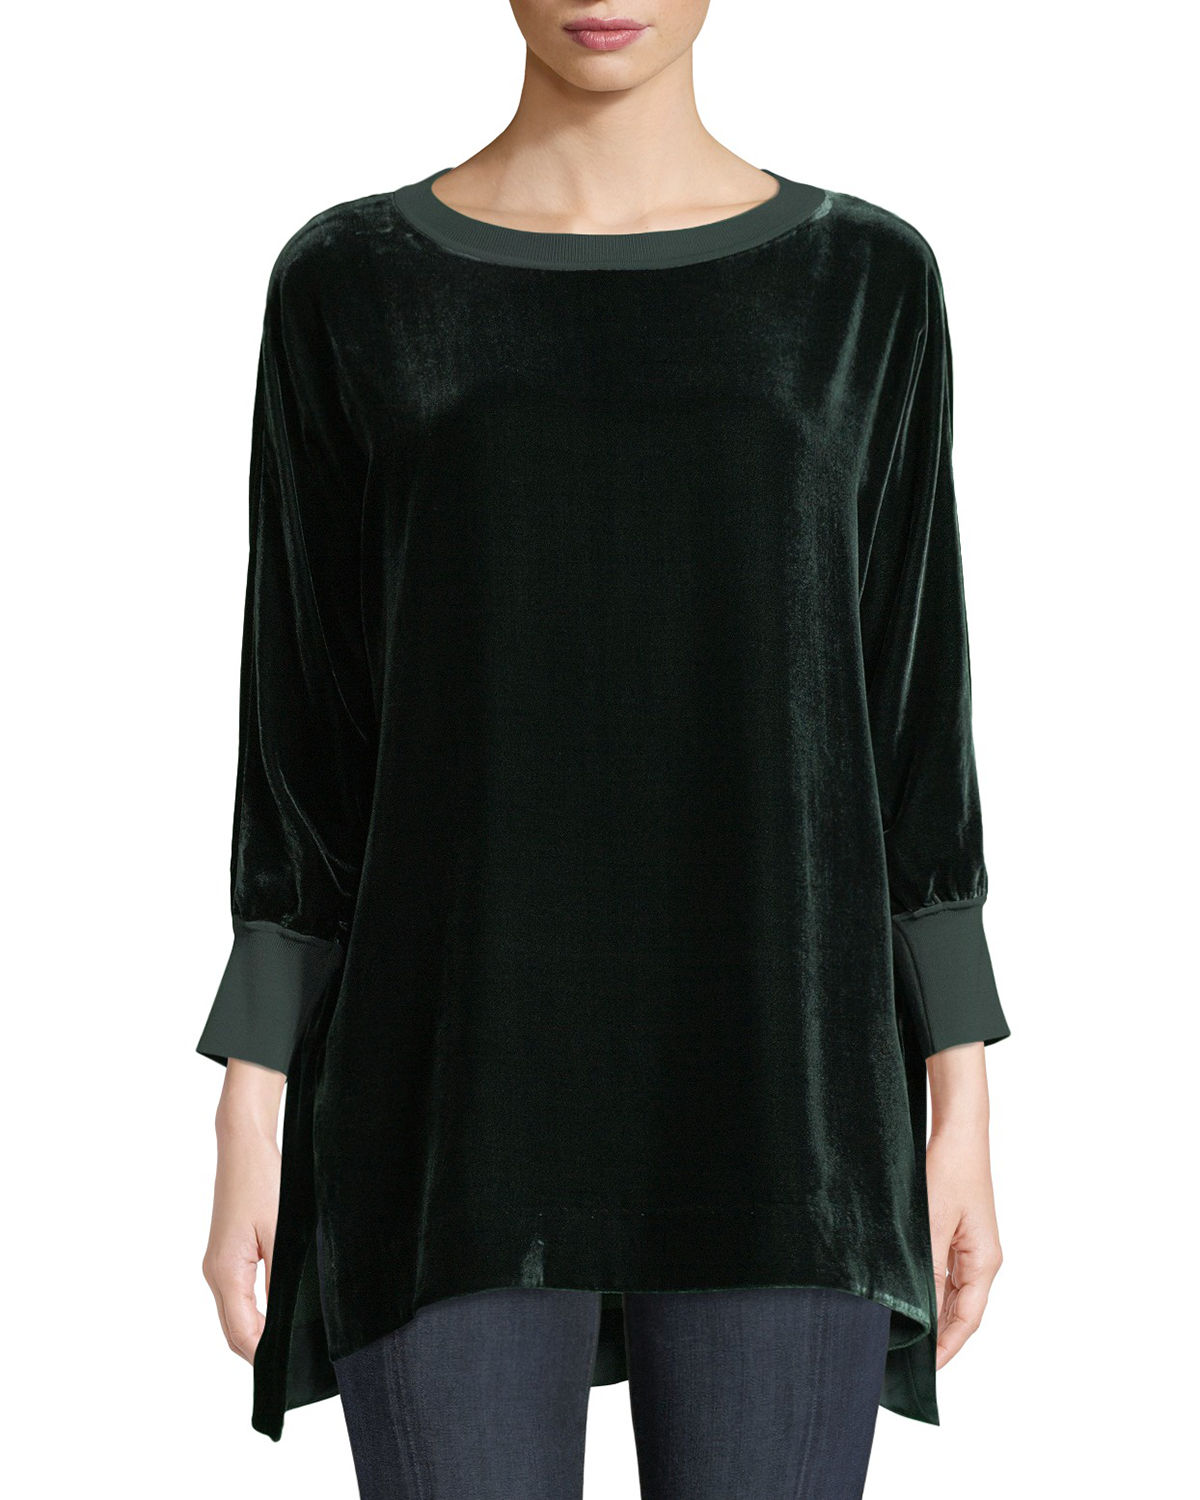 Lafayette 148 Knits JOPLIN ROUND-NECK LONG-SLEEVE VELVET BLOUSE W/ KNIT TRIM